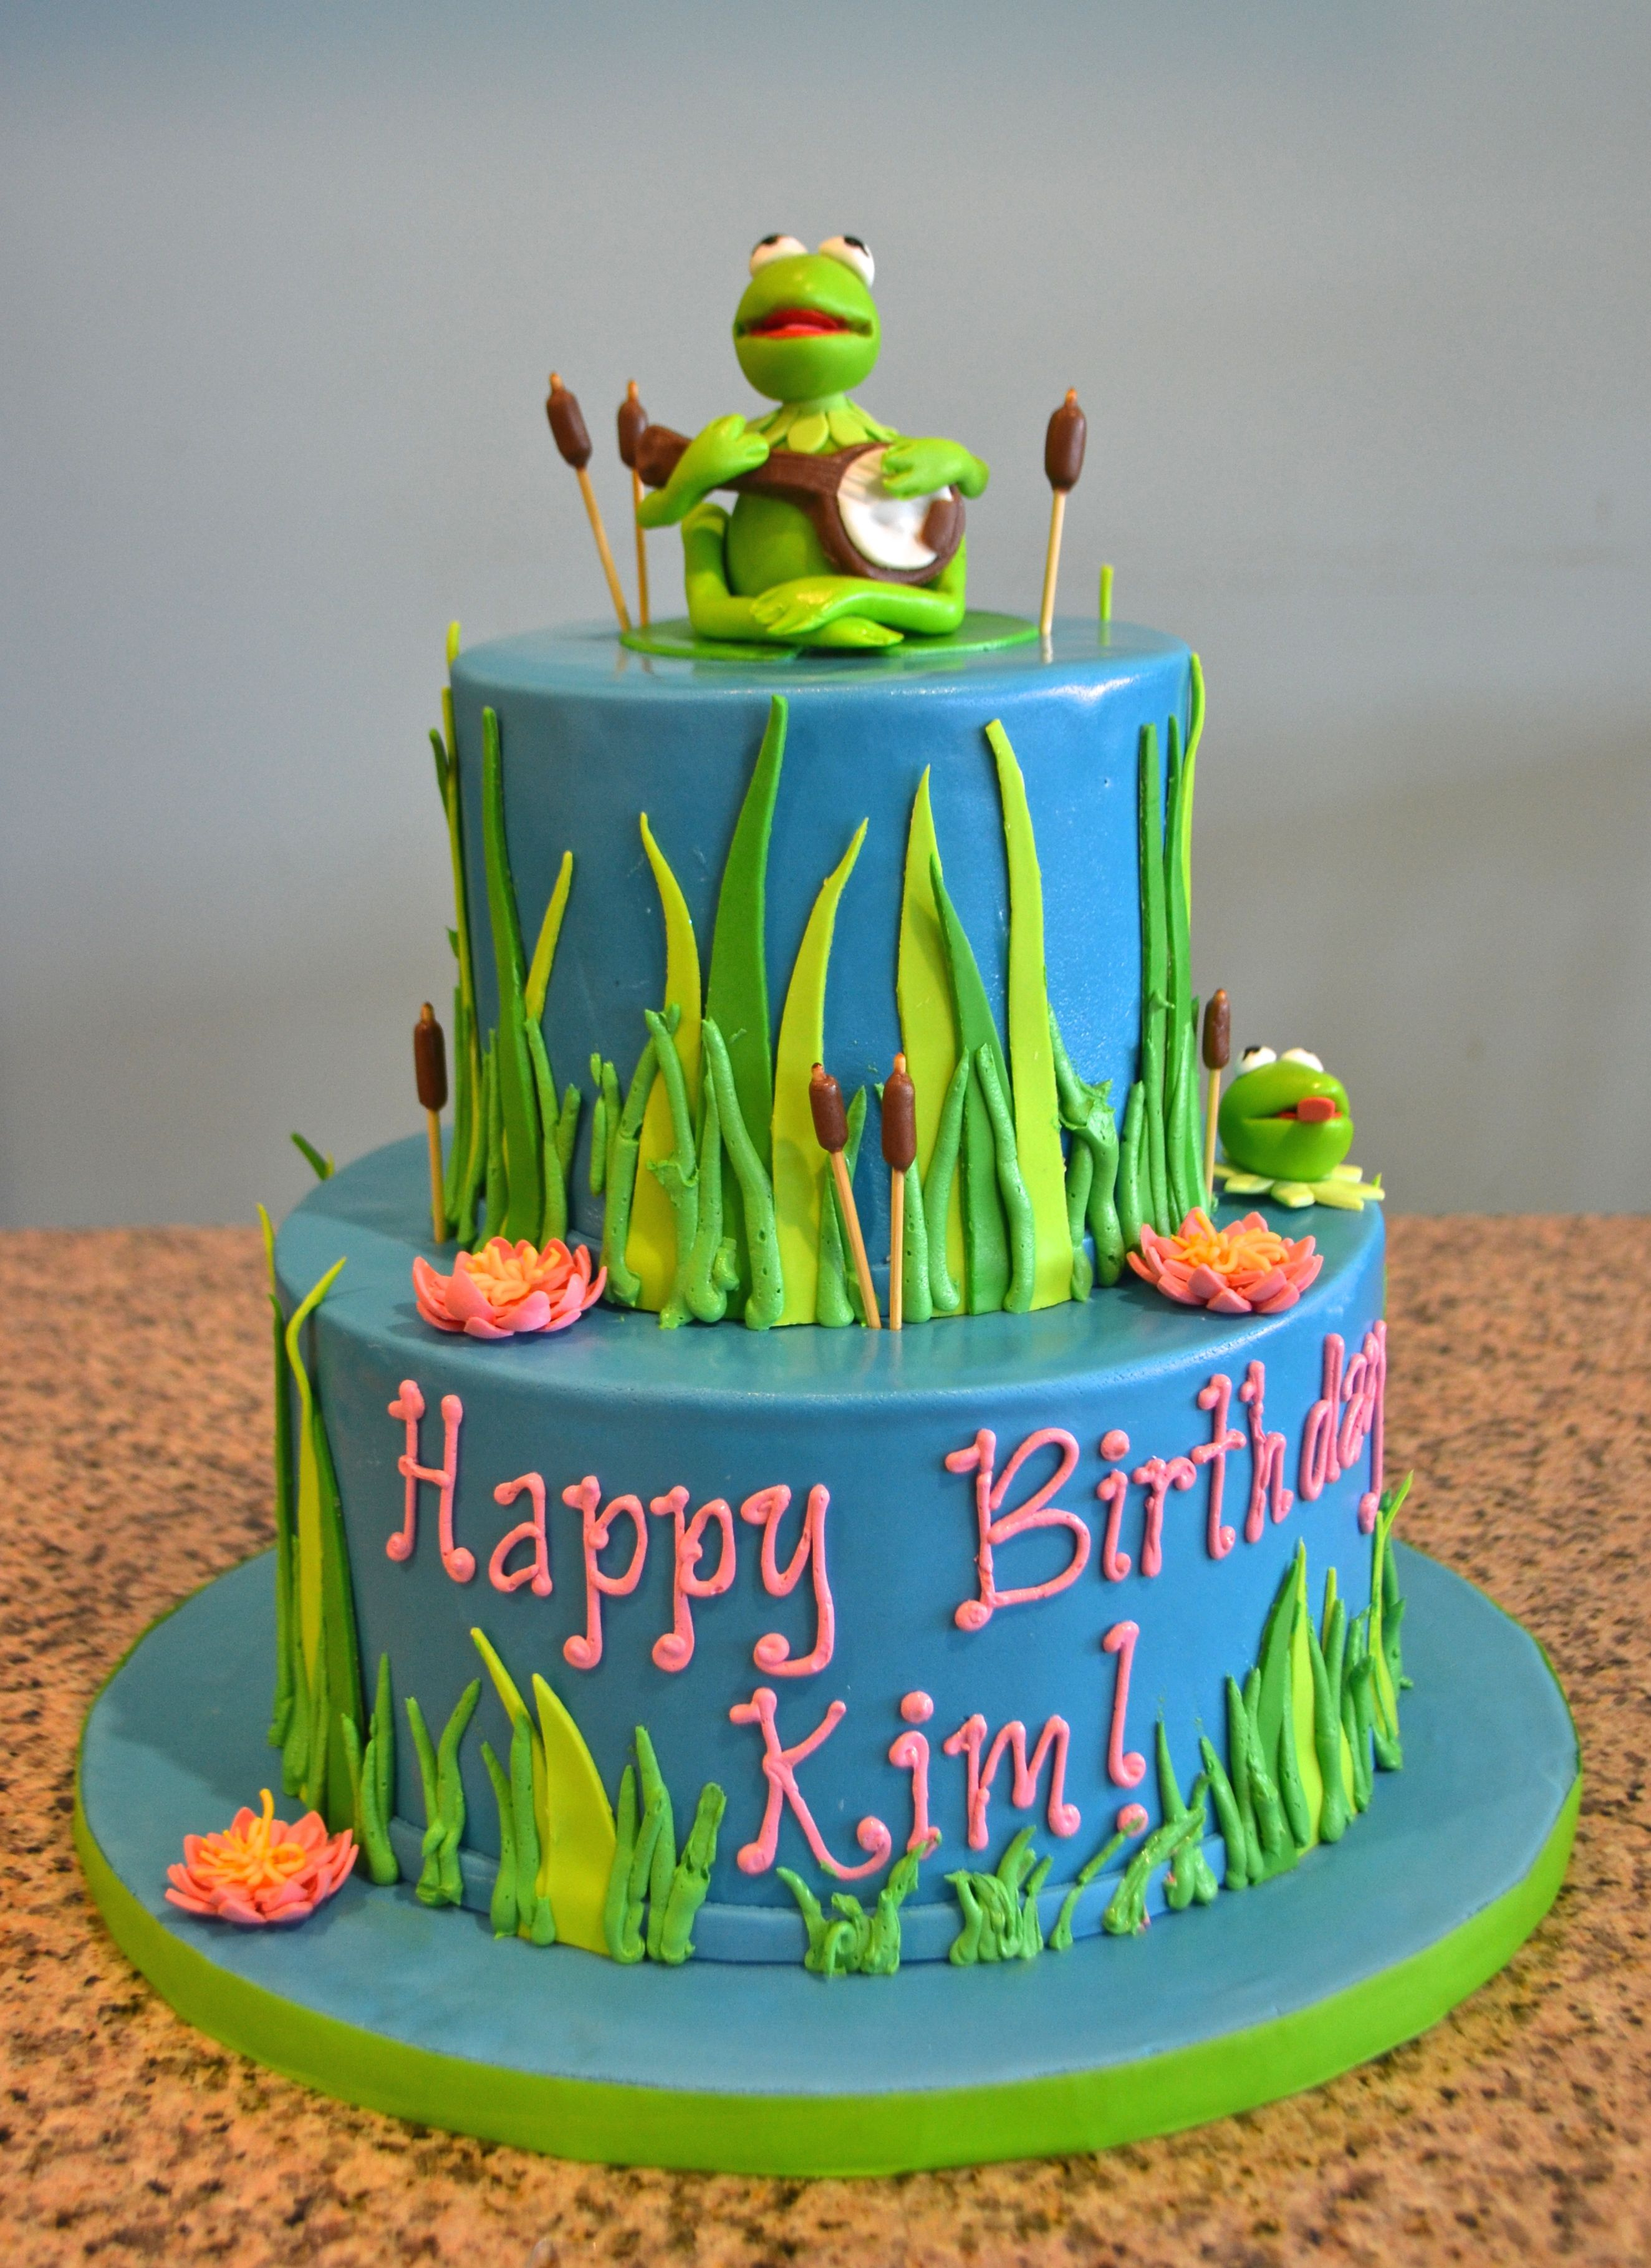 Kermit The Frog Birthday Cake Sugarland Raleigh Chapel Hill Cake